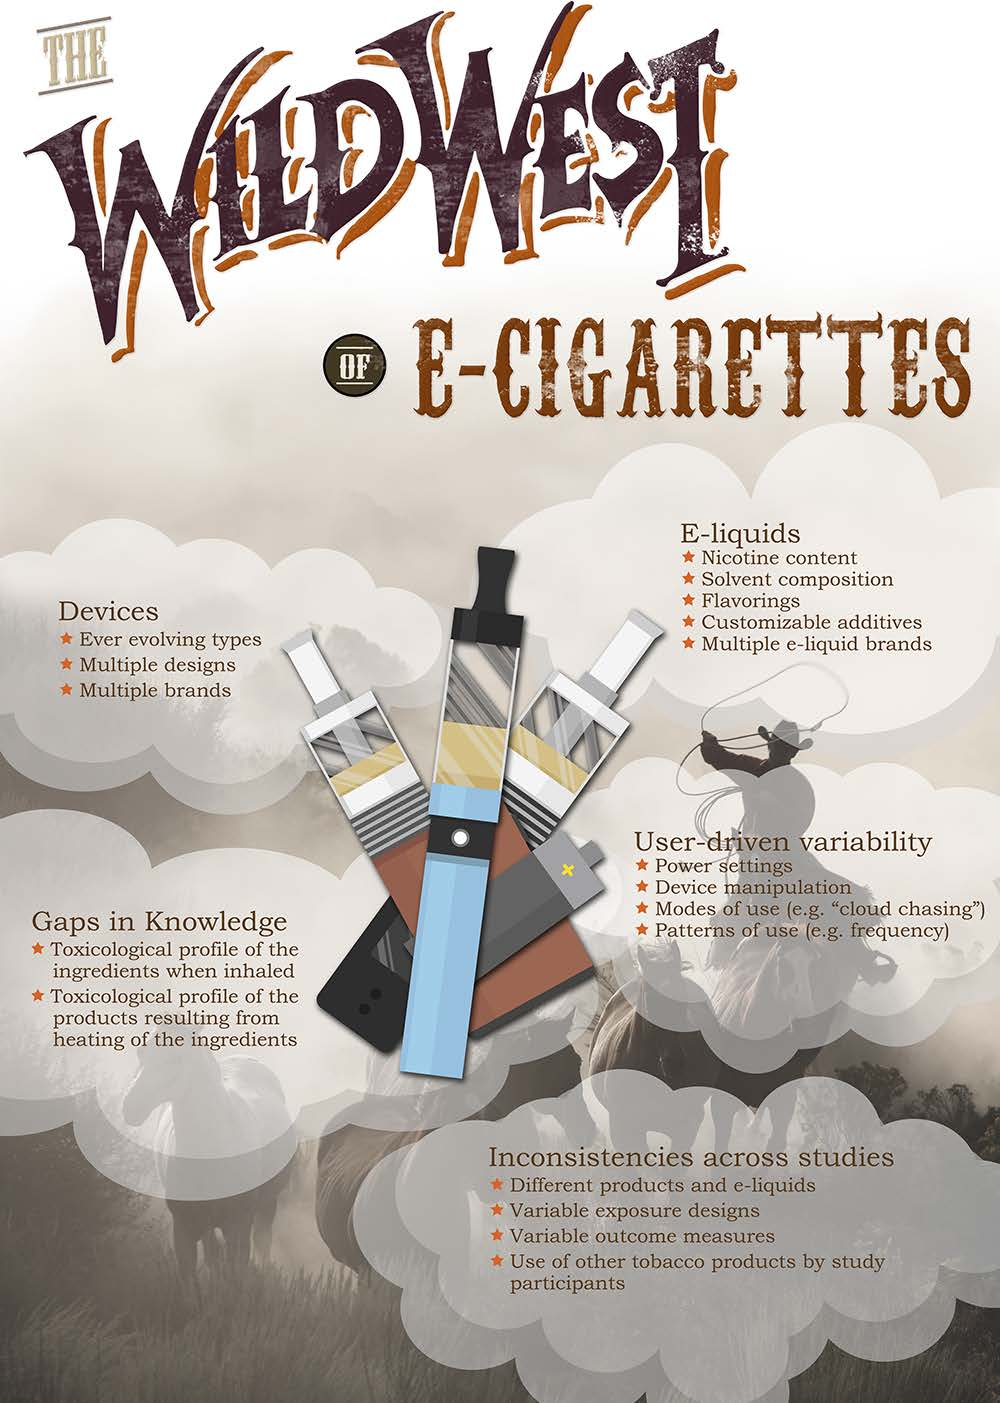 the wild west of e-cigarettes